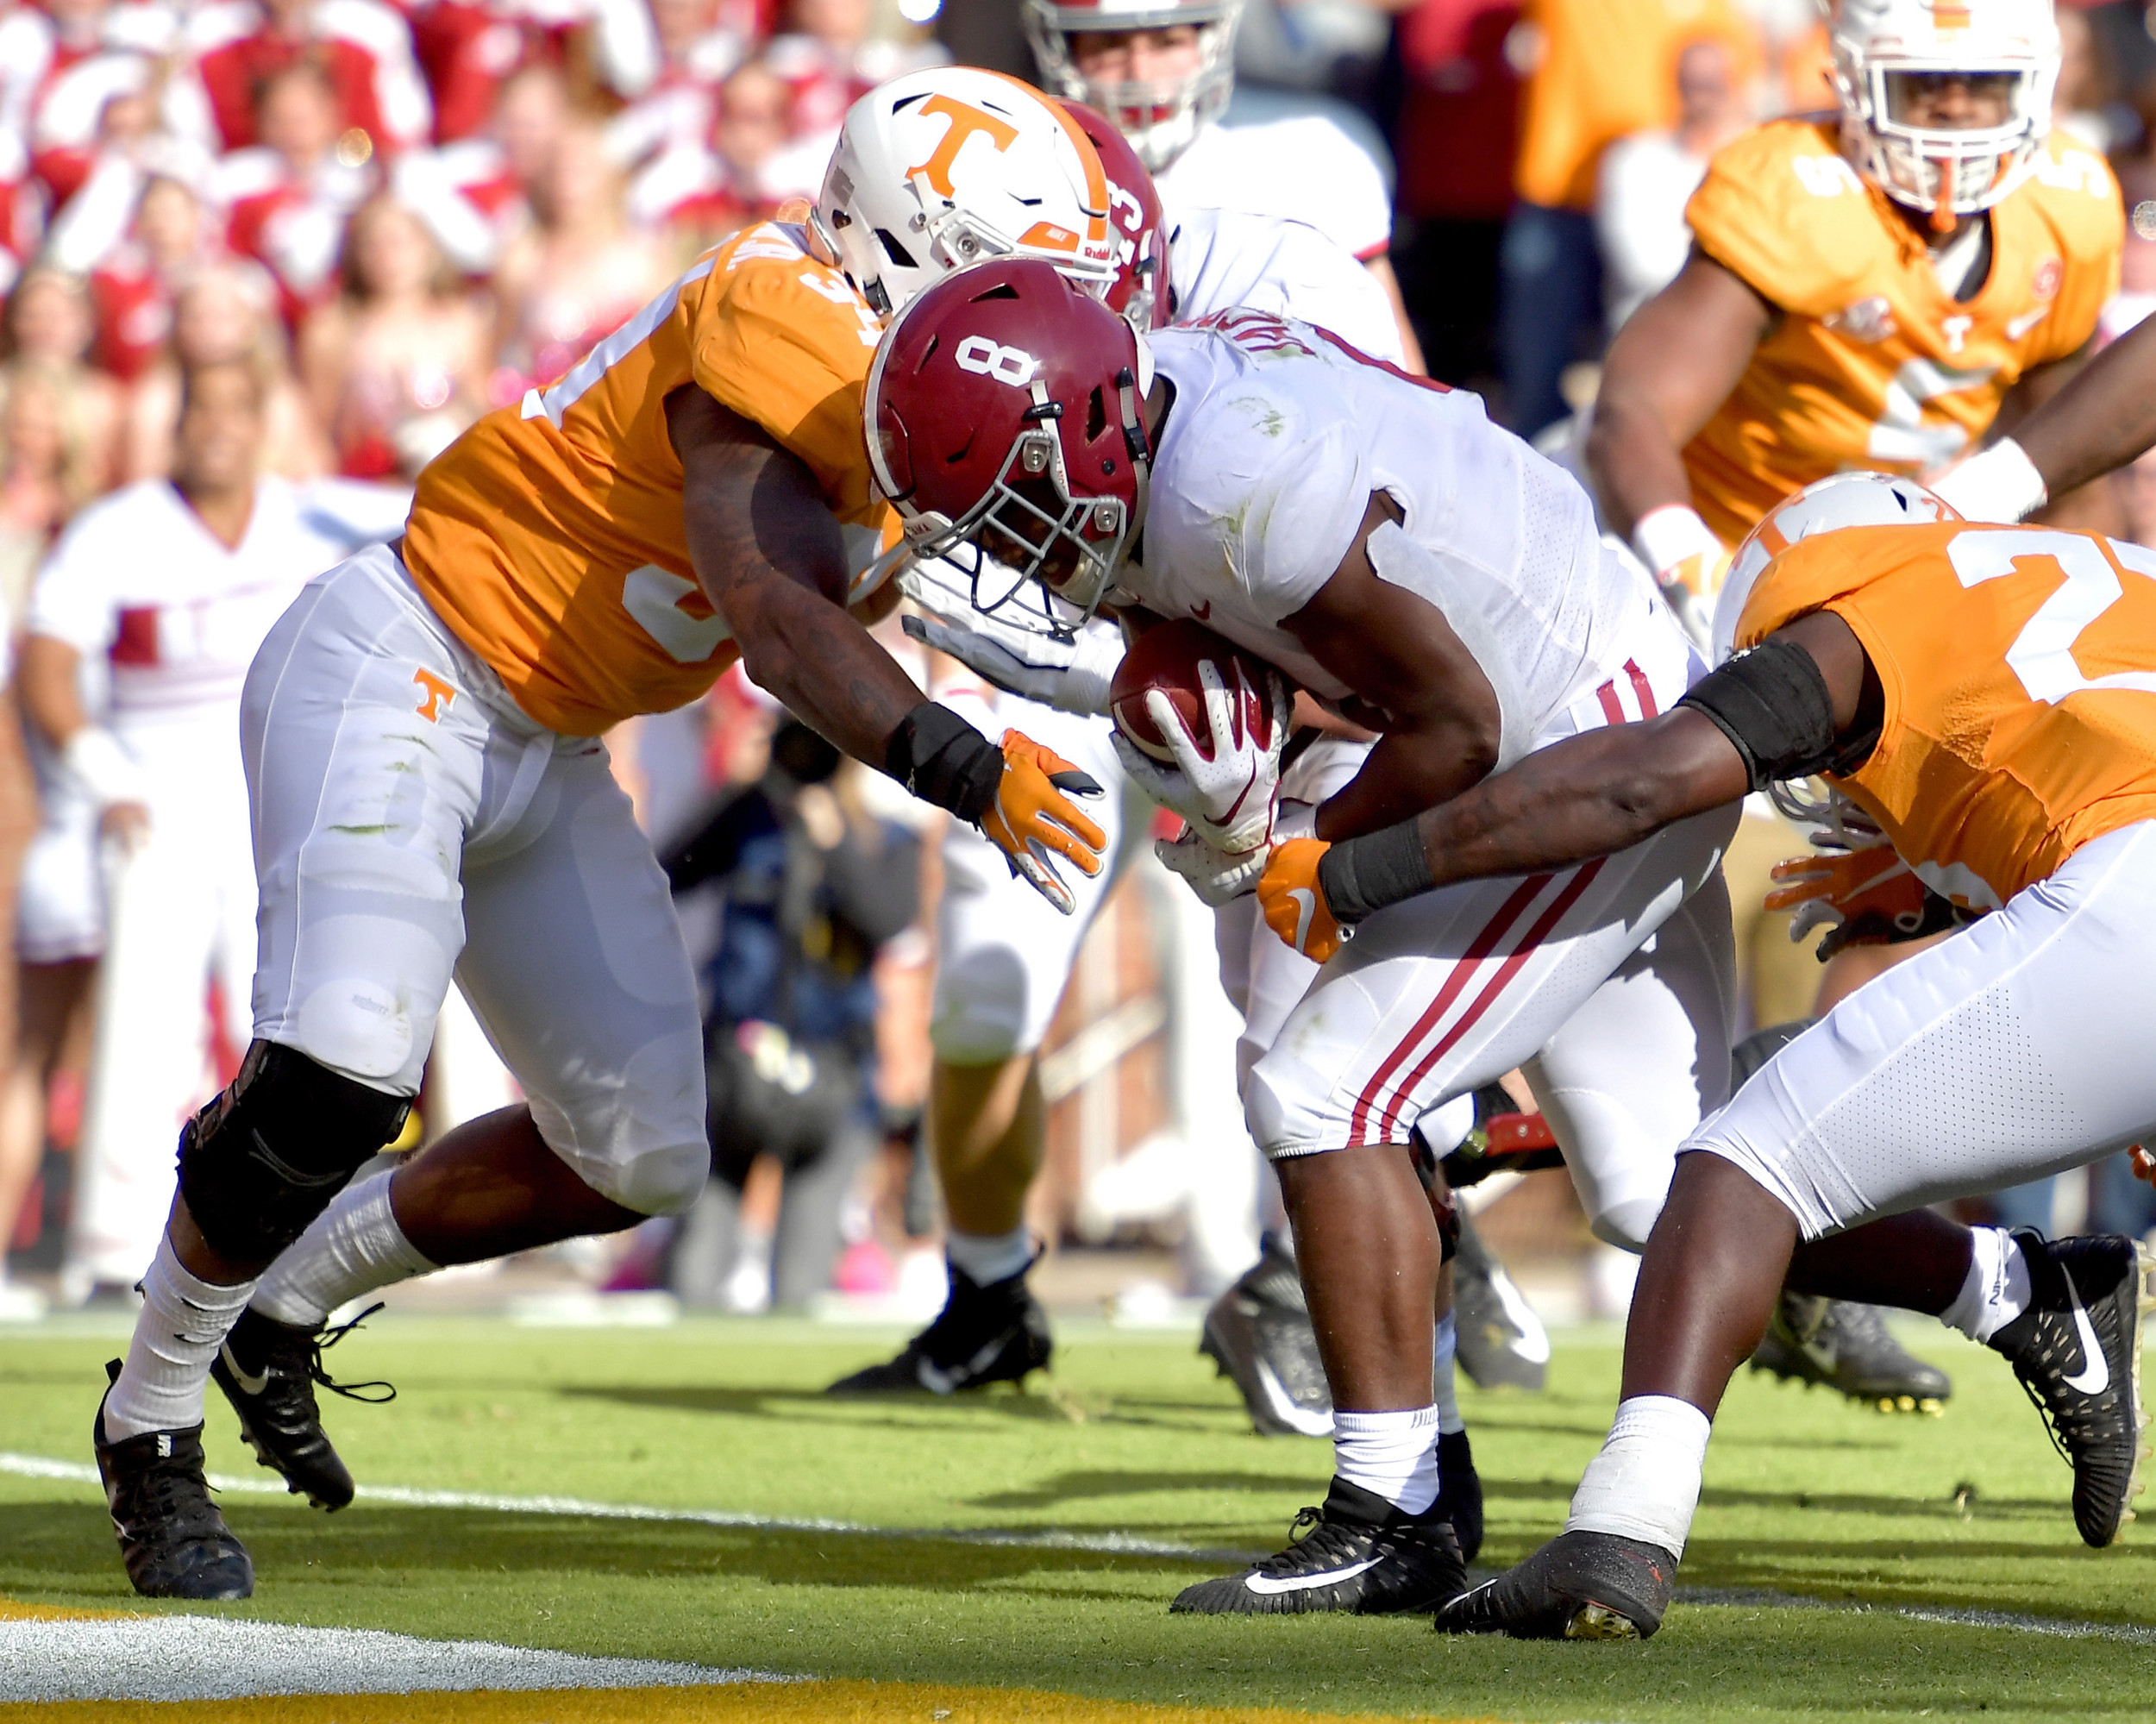 Alabama Crimson Tide running back Josh Jacobs (8) with a carry for touchdown in the ]first half of the Alabama at Tennessee NCAA football game on Saturday, Oct. 20, 2018, at Neyland Stadium in Knoxville. Tenn. Alabama wins 58-21. (Photo by Lee Walls)